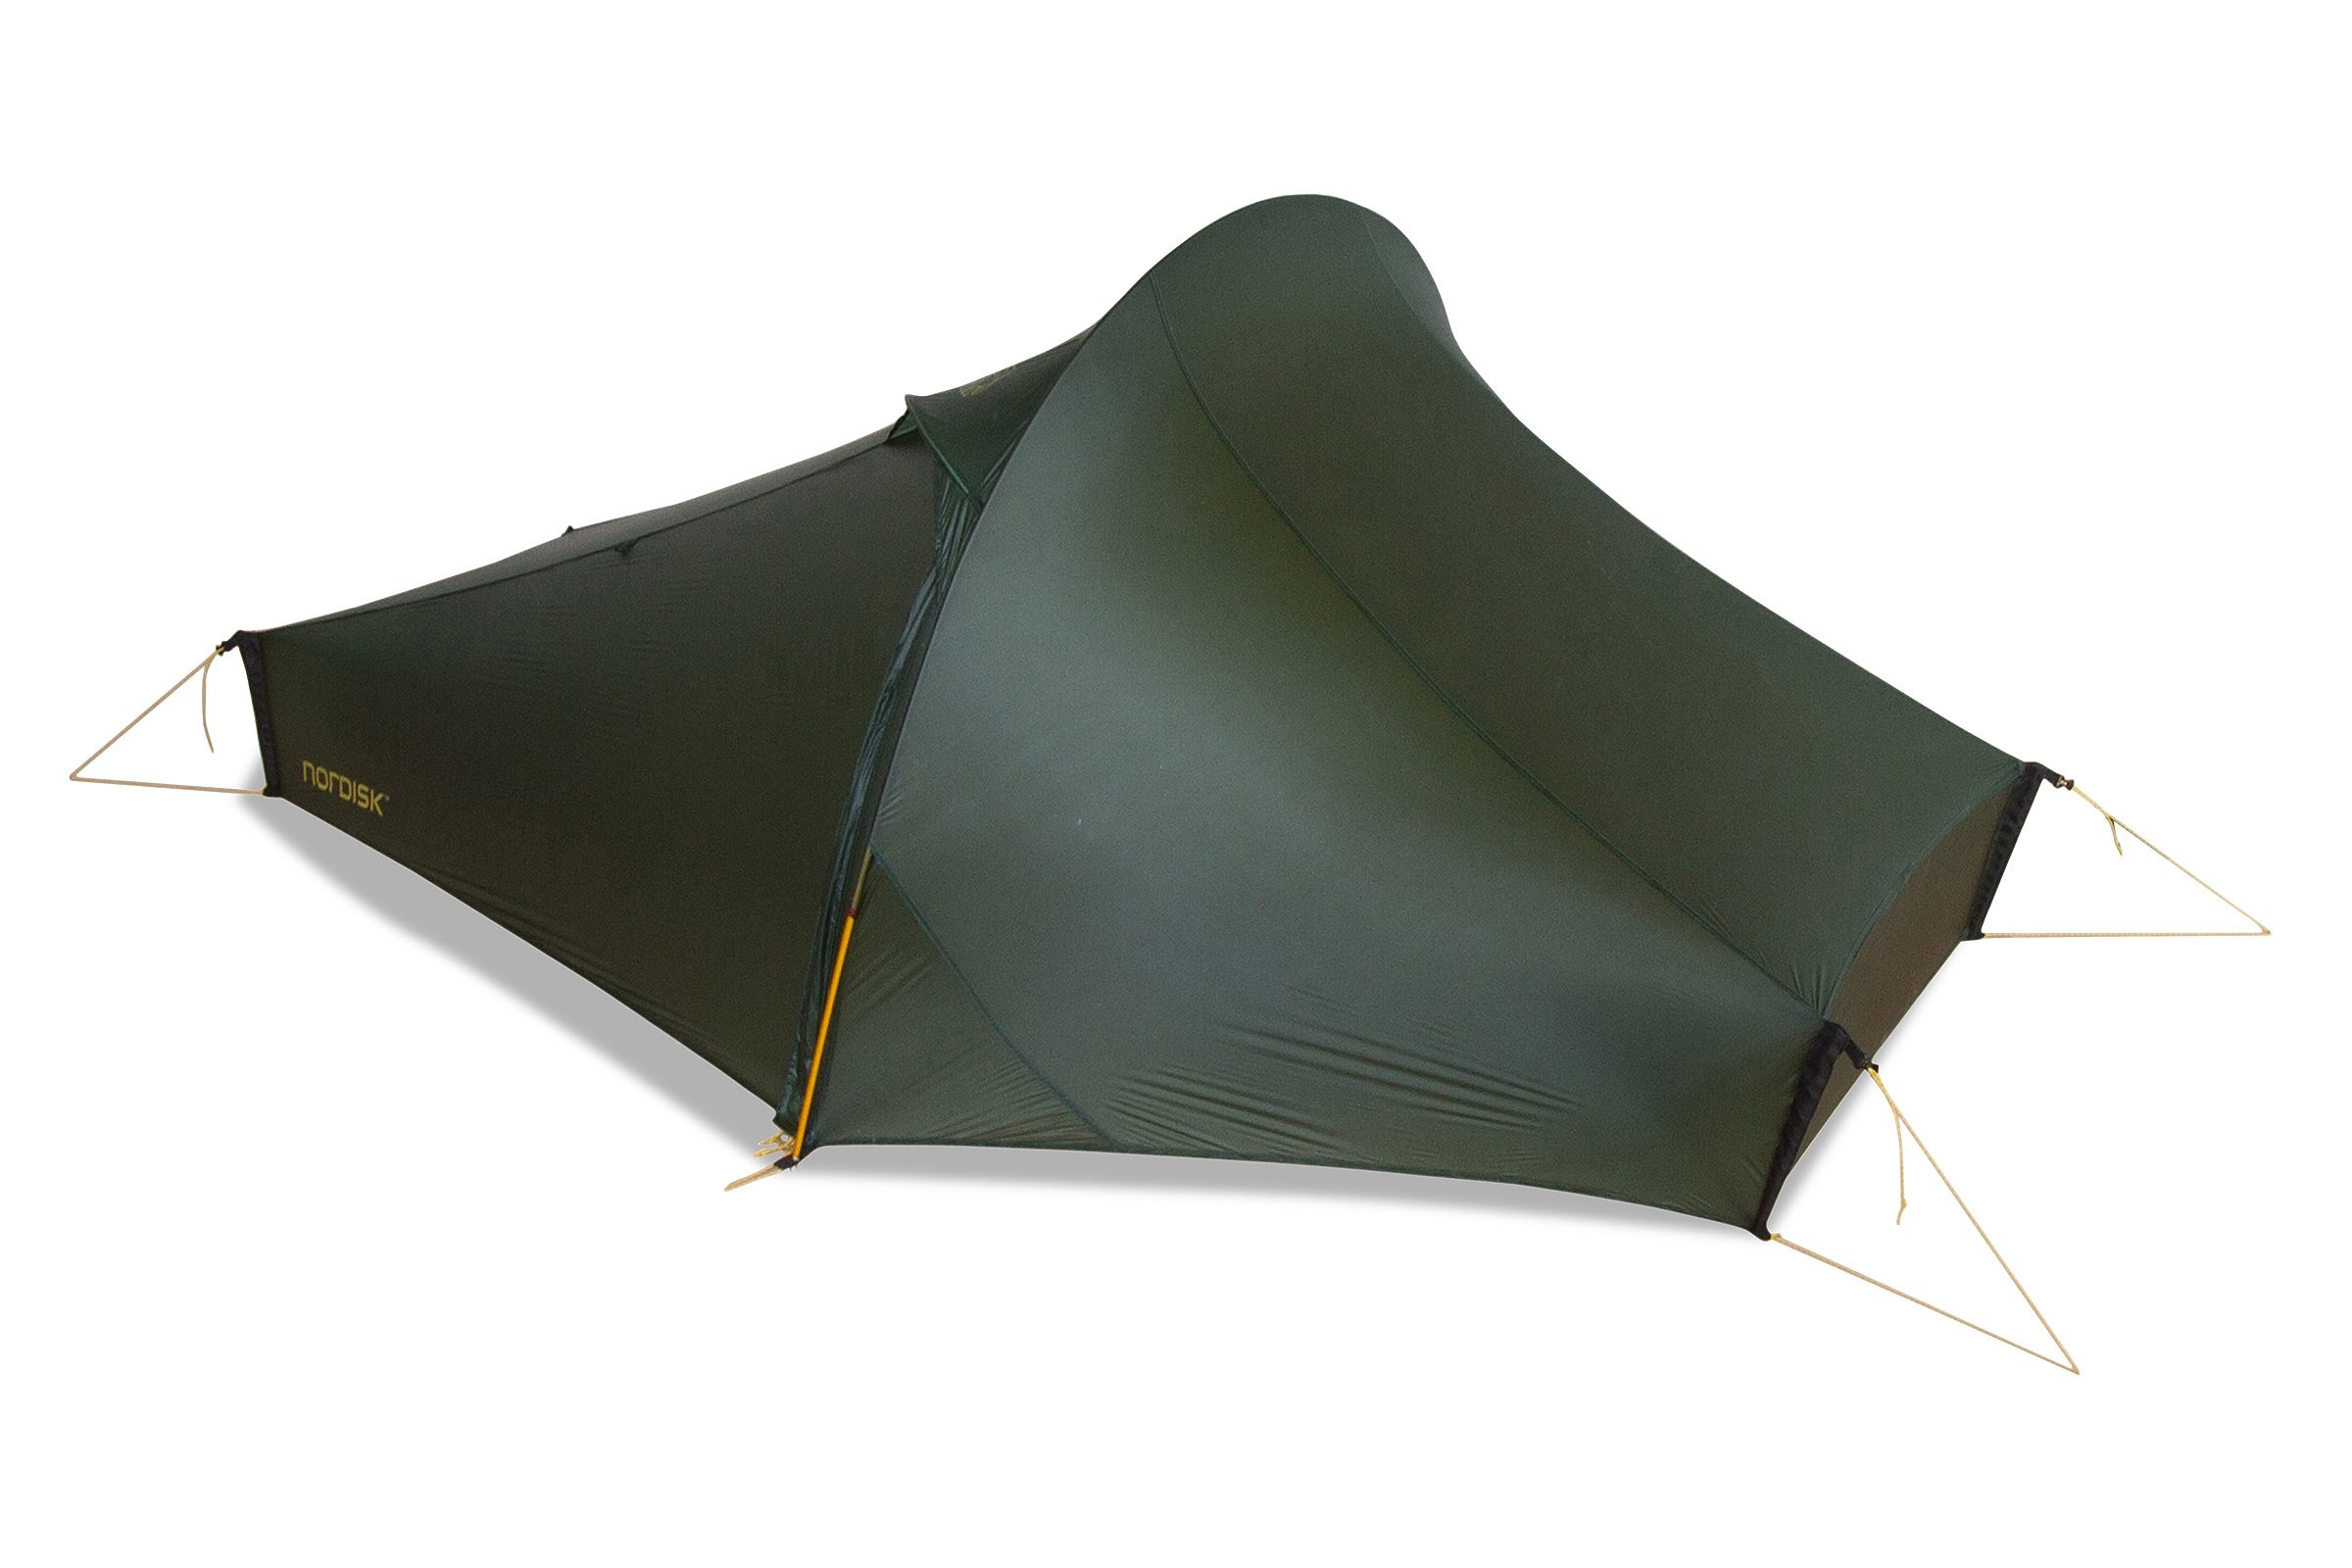 Nordisk Zelt »Telemark 1 Light Weight Tent«